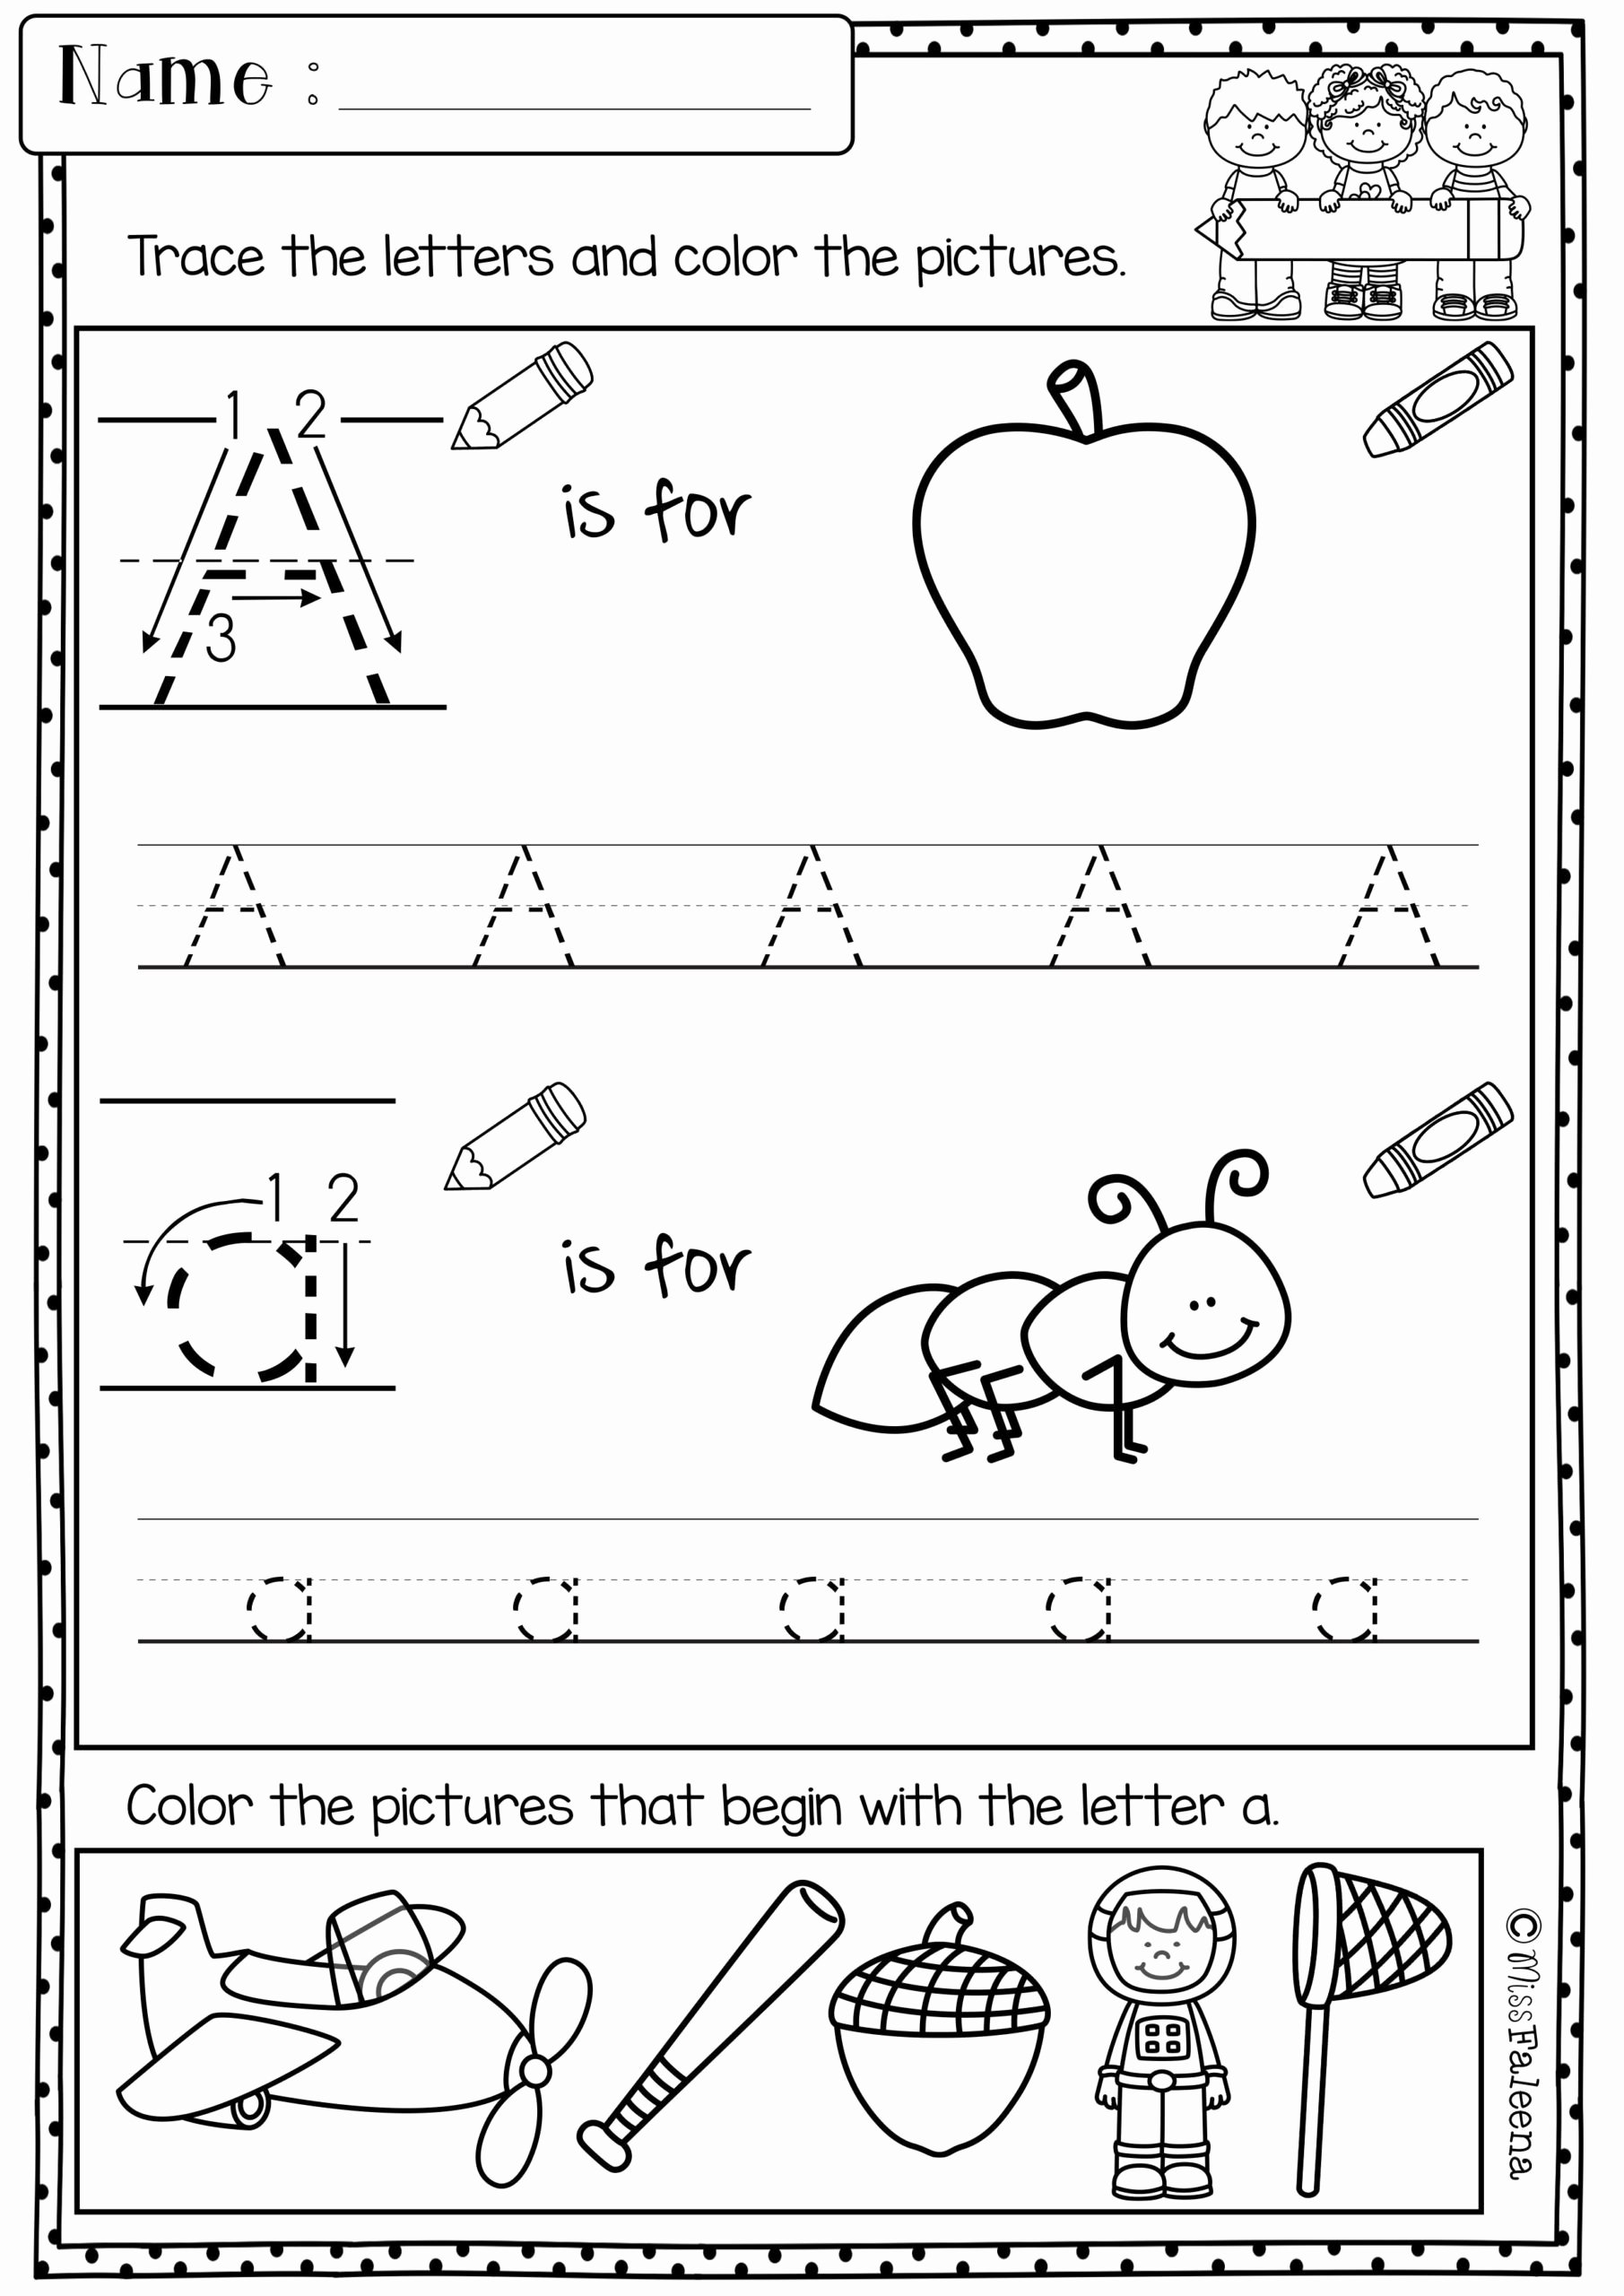 Matching Game Worksheets for Preschoolers New Printable Coloring Esl News the Game Children Matching